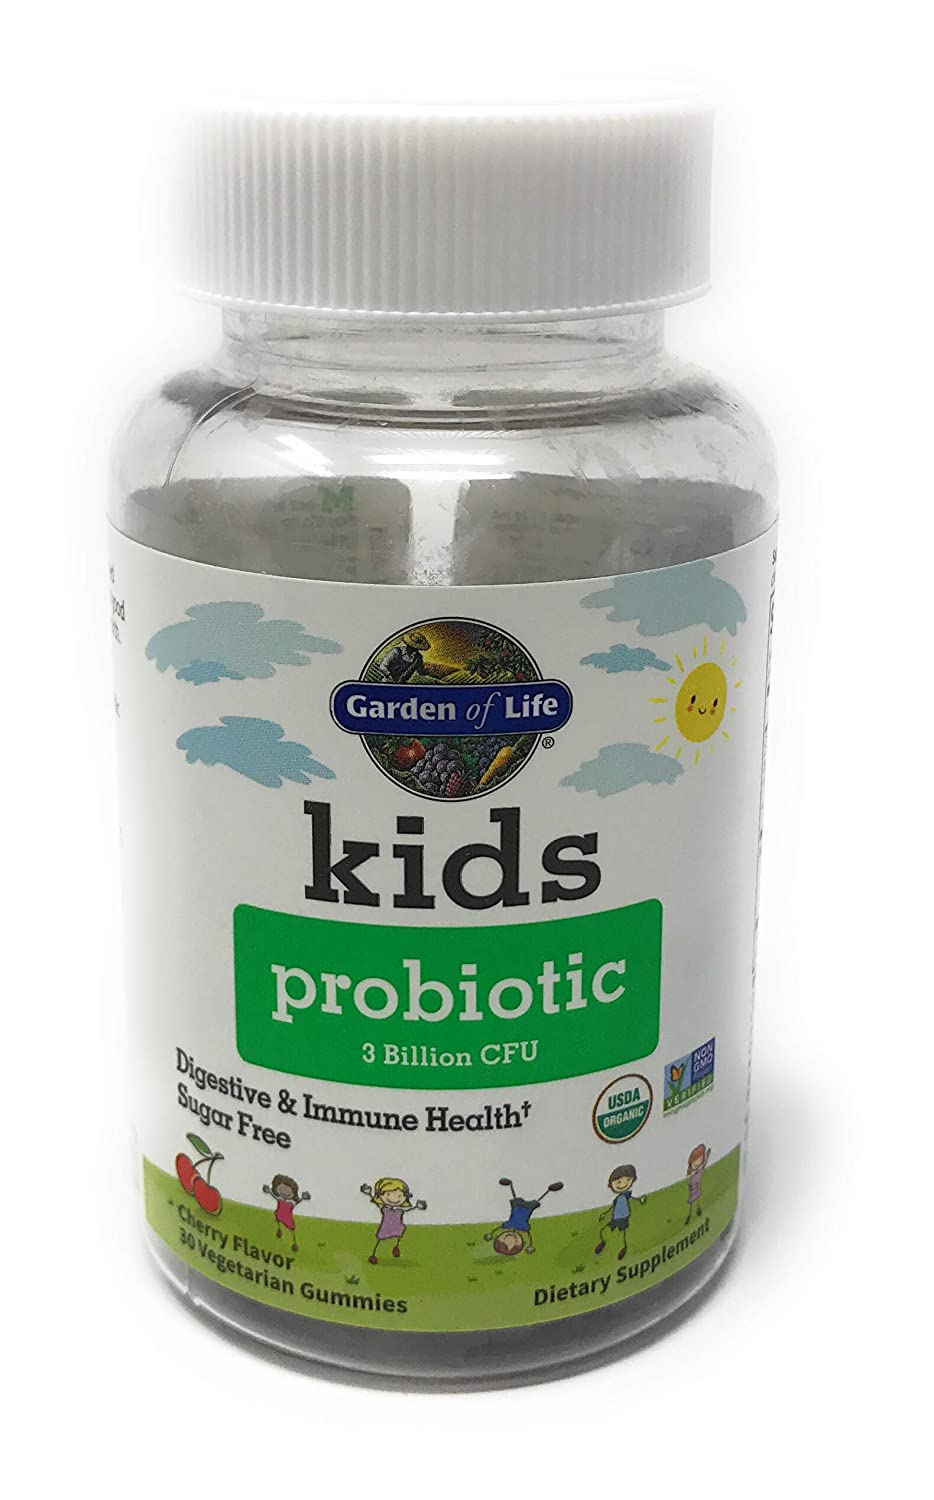 Garden of Life Kids Probiotic 3 Billion CFU, Cherry Flavor Gummies - Sugar Free Once Daily Probiotics for Kids, Probiotics Plus Fiber for Children's Digestive & Immune Health, 30 Vegetarian Gummies